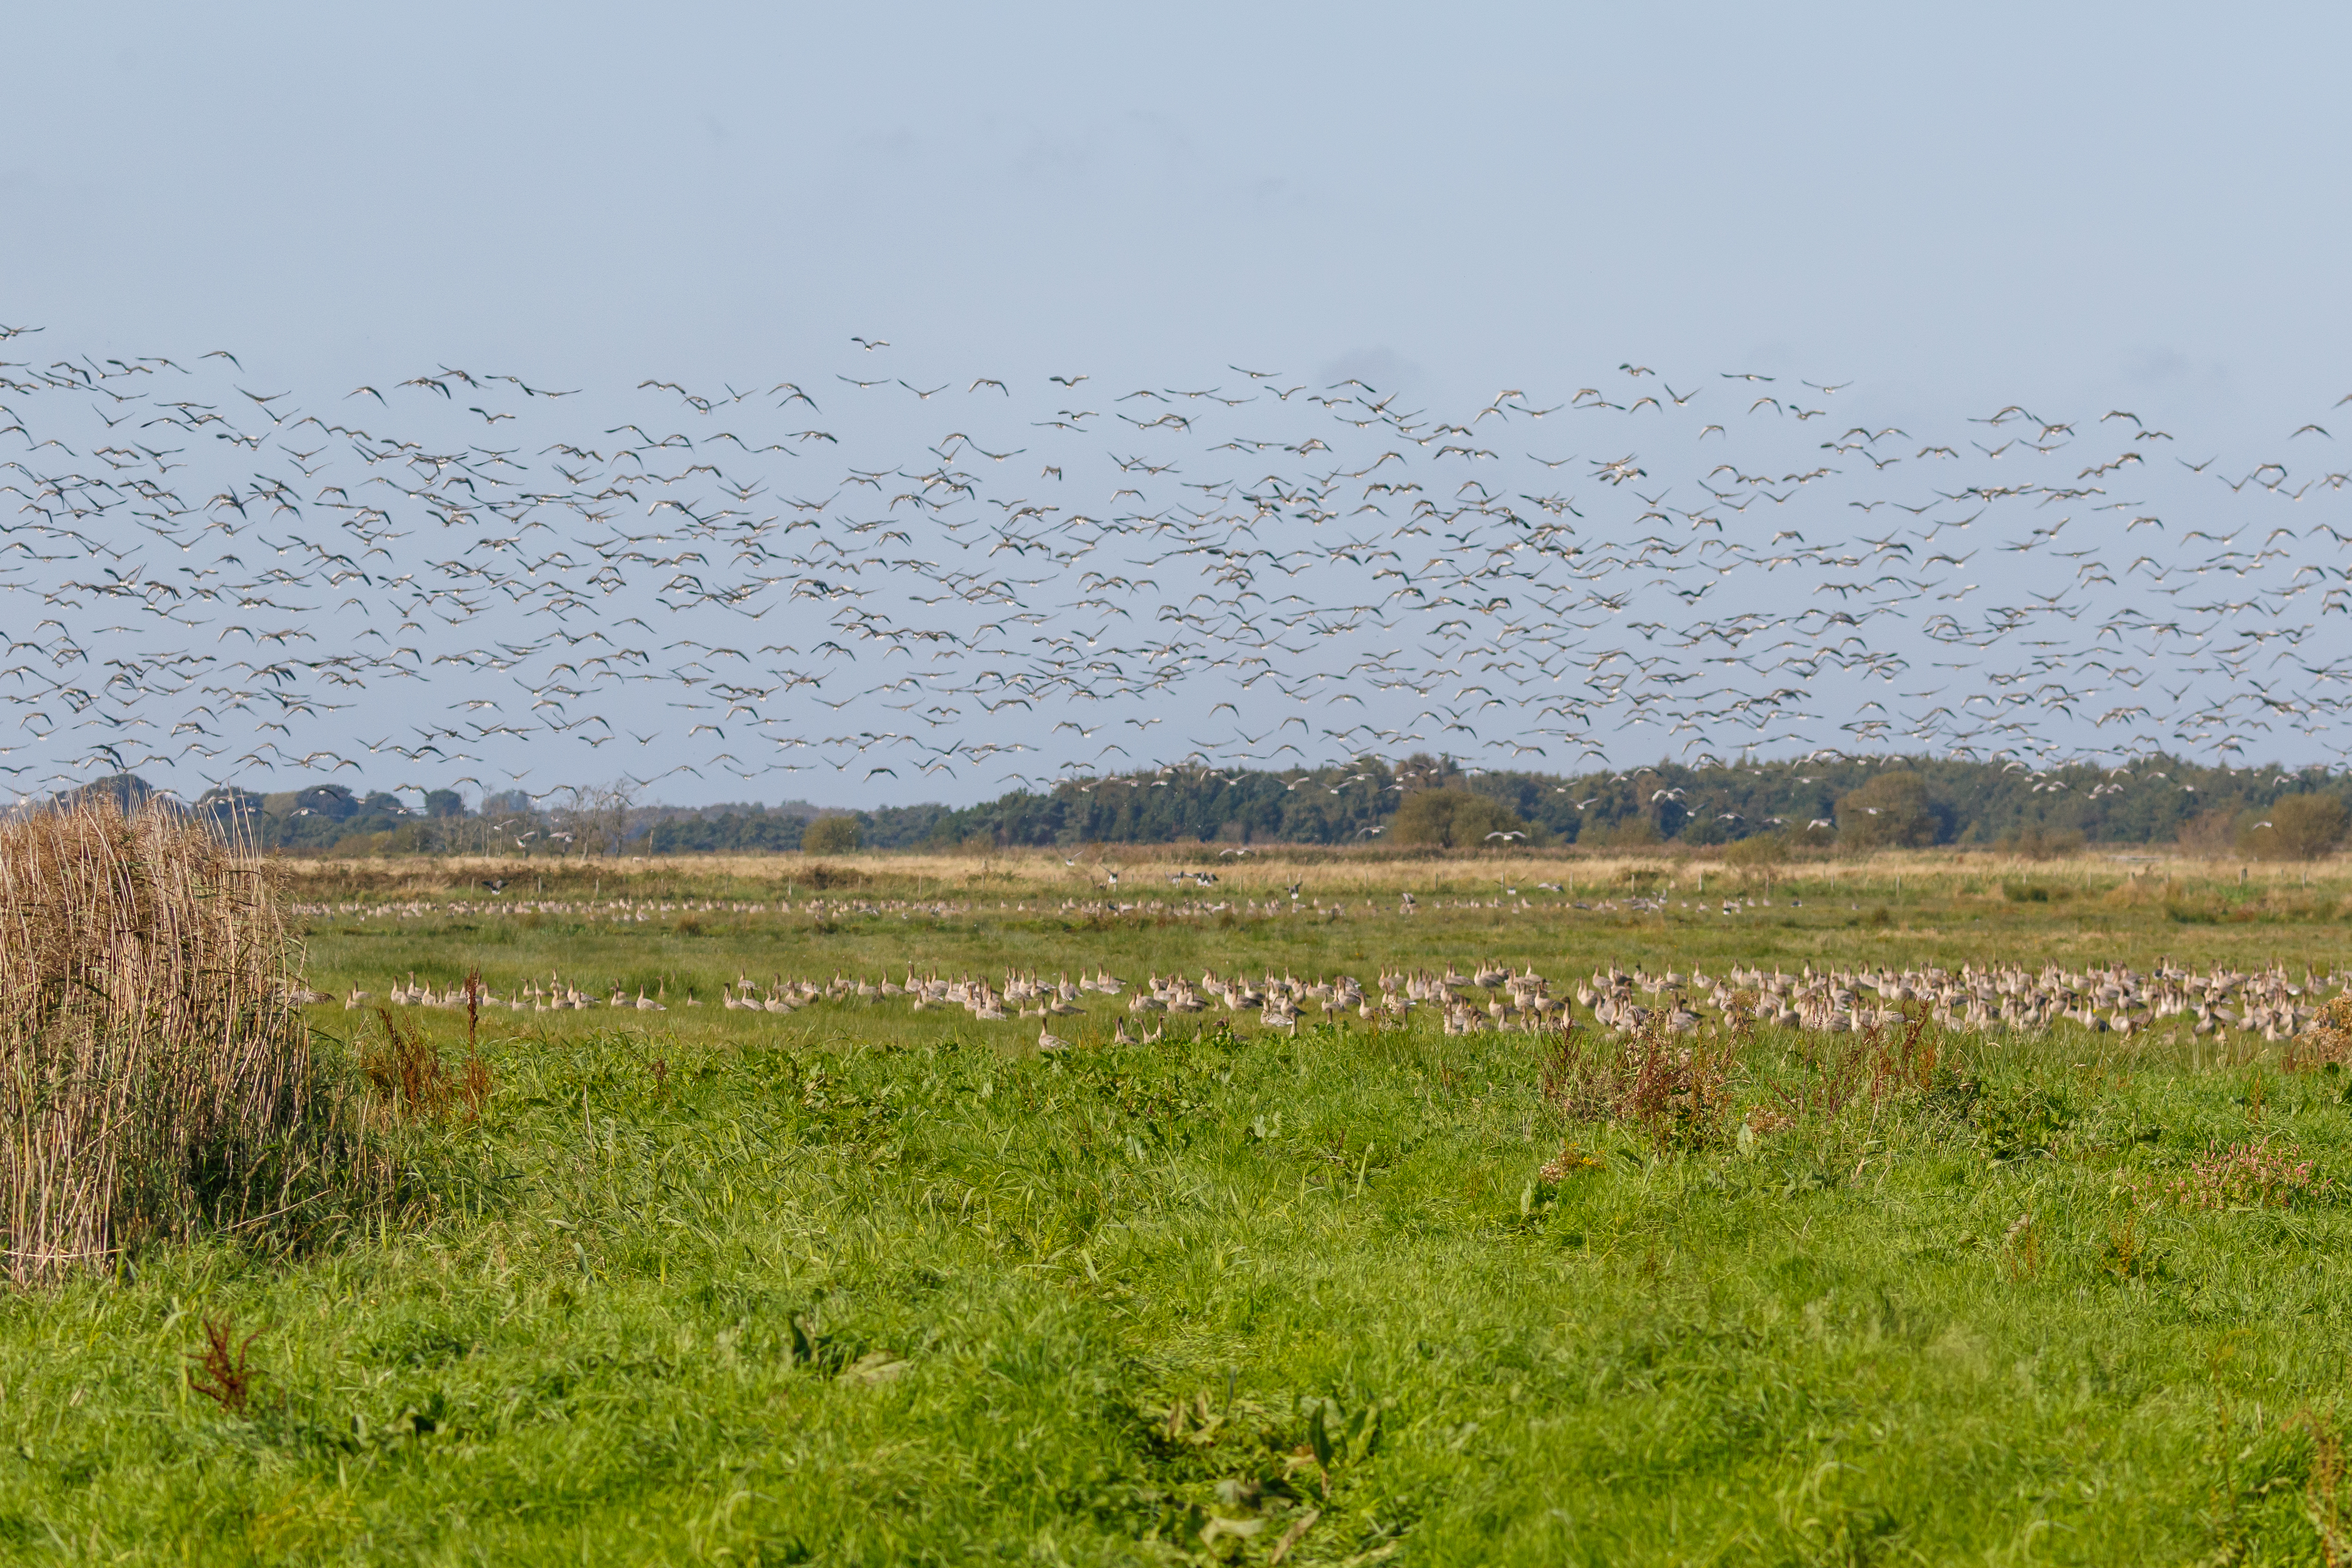 Fall for nature's spectacle at WWT Martin Mere this autumn